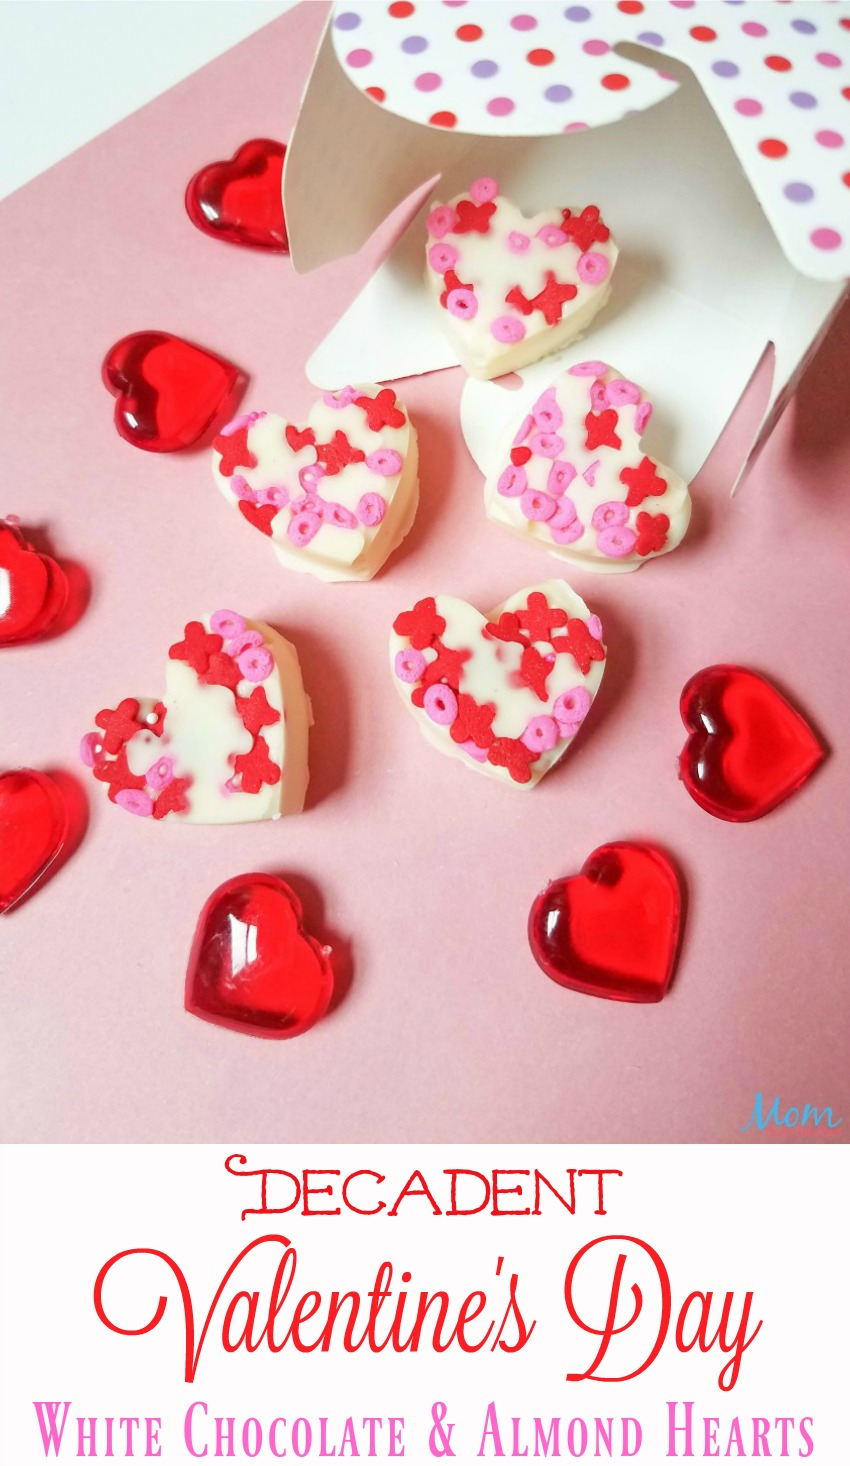 Decadent Valentine's Day White Chocolate Almond Hearts #sweet2019 #sweets #hearts #candy #recipe #valentinesday